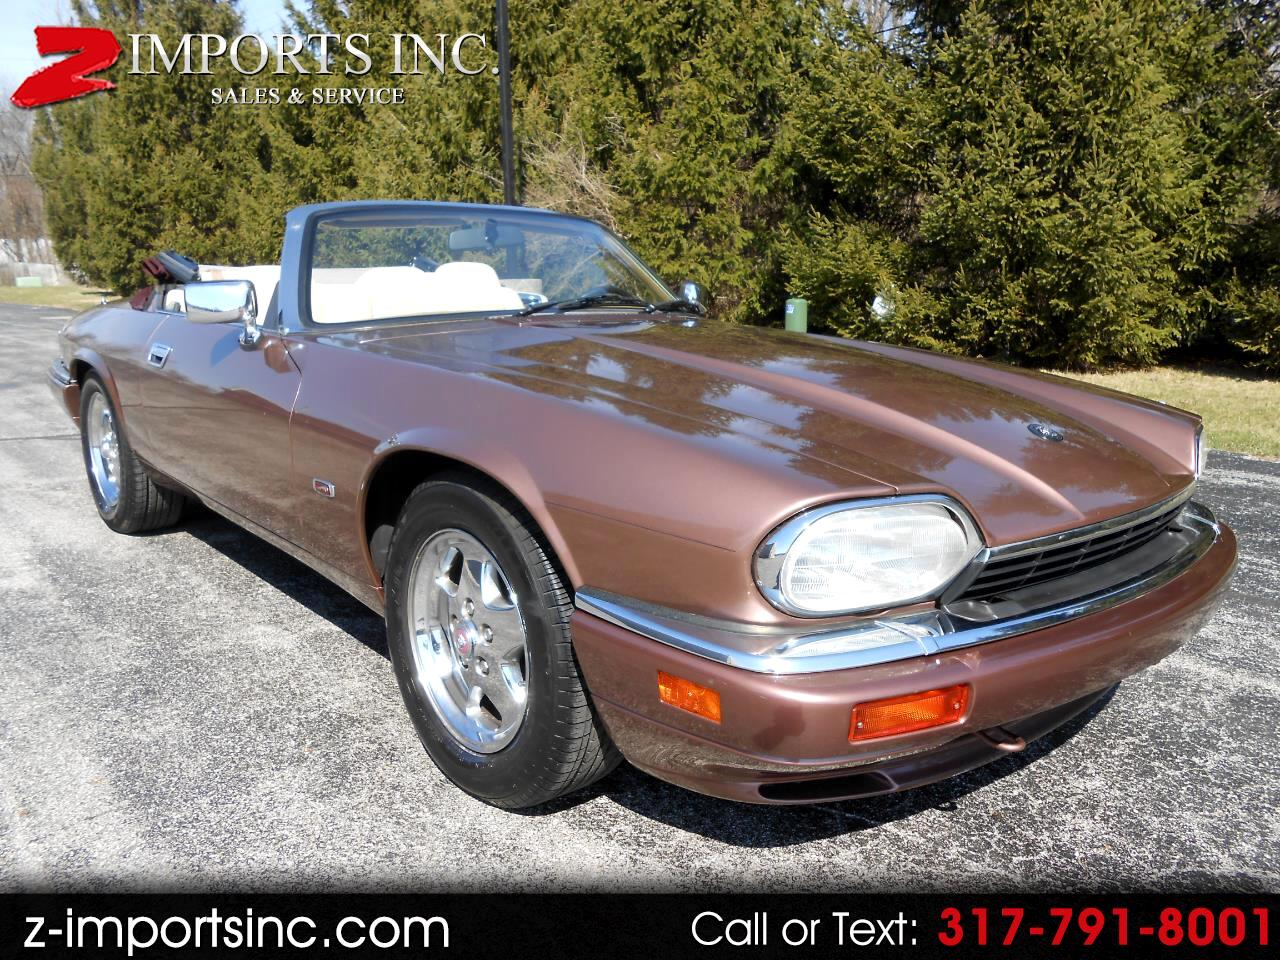 1995 Jaguar XJS 4.0L convertible